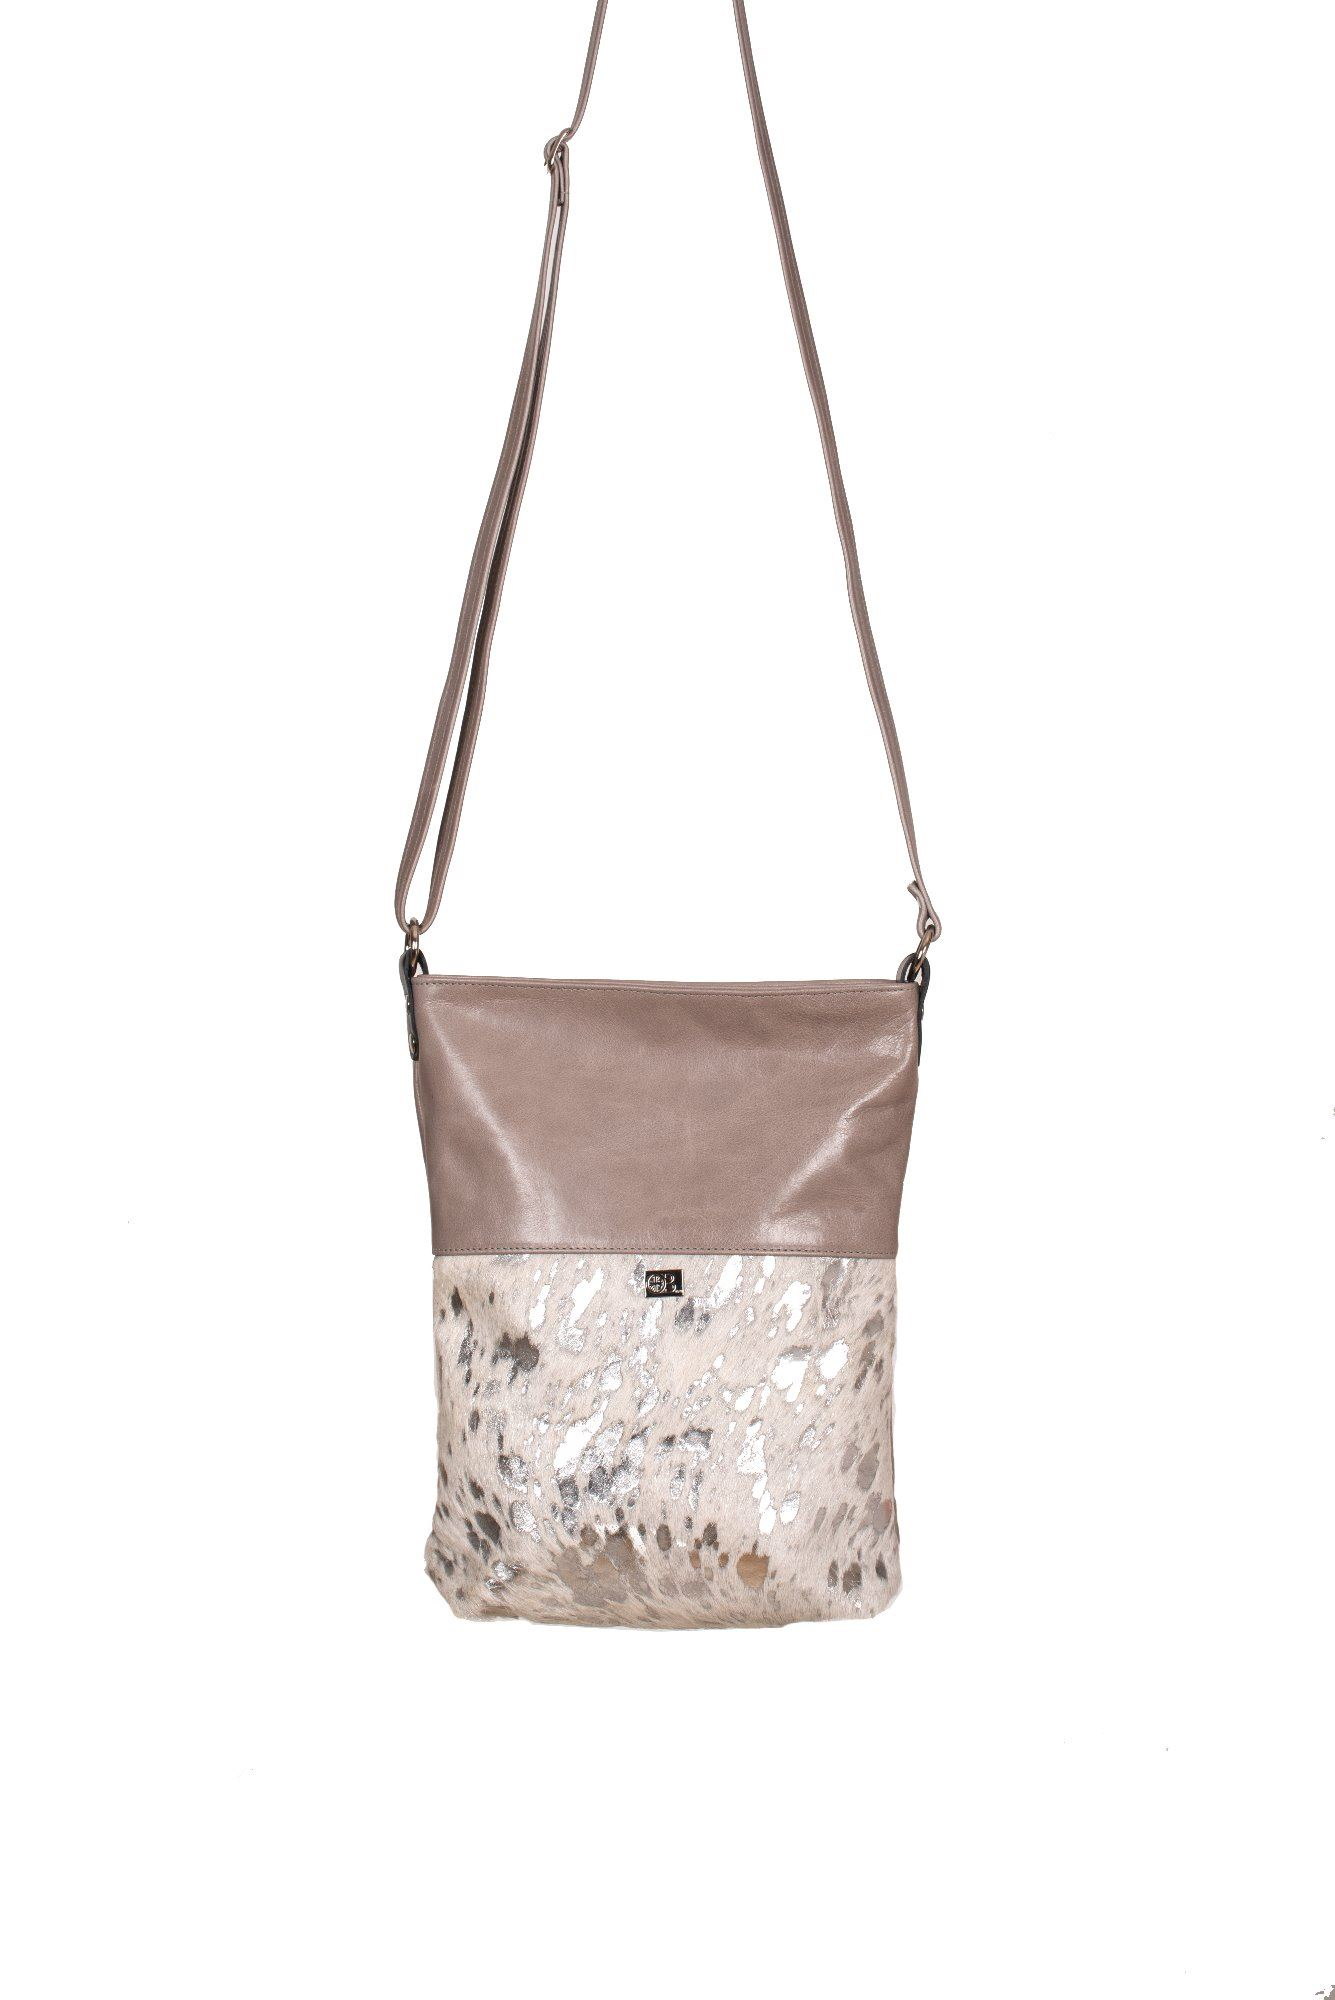 Cowhide Crossbody Bag Silver Acido - Ronson